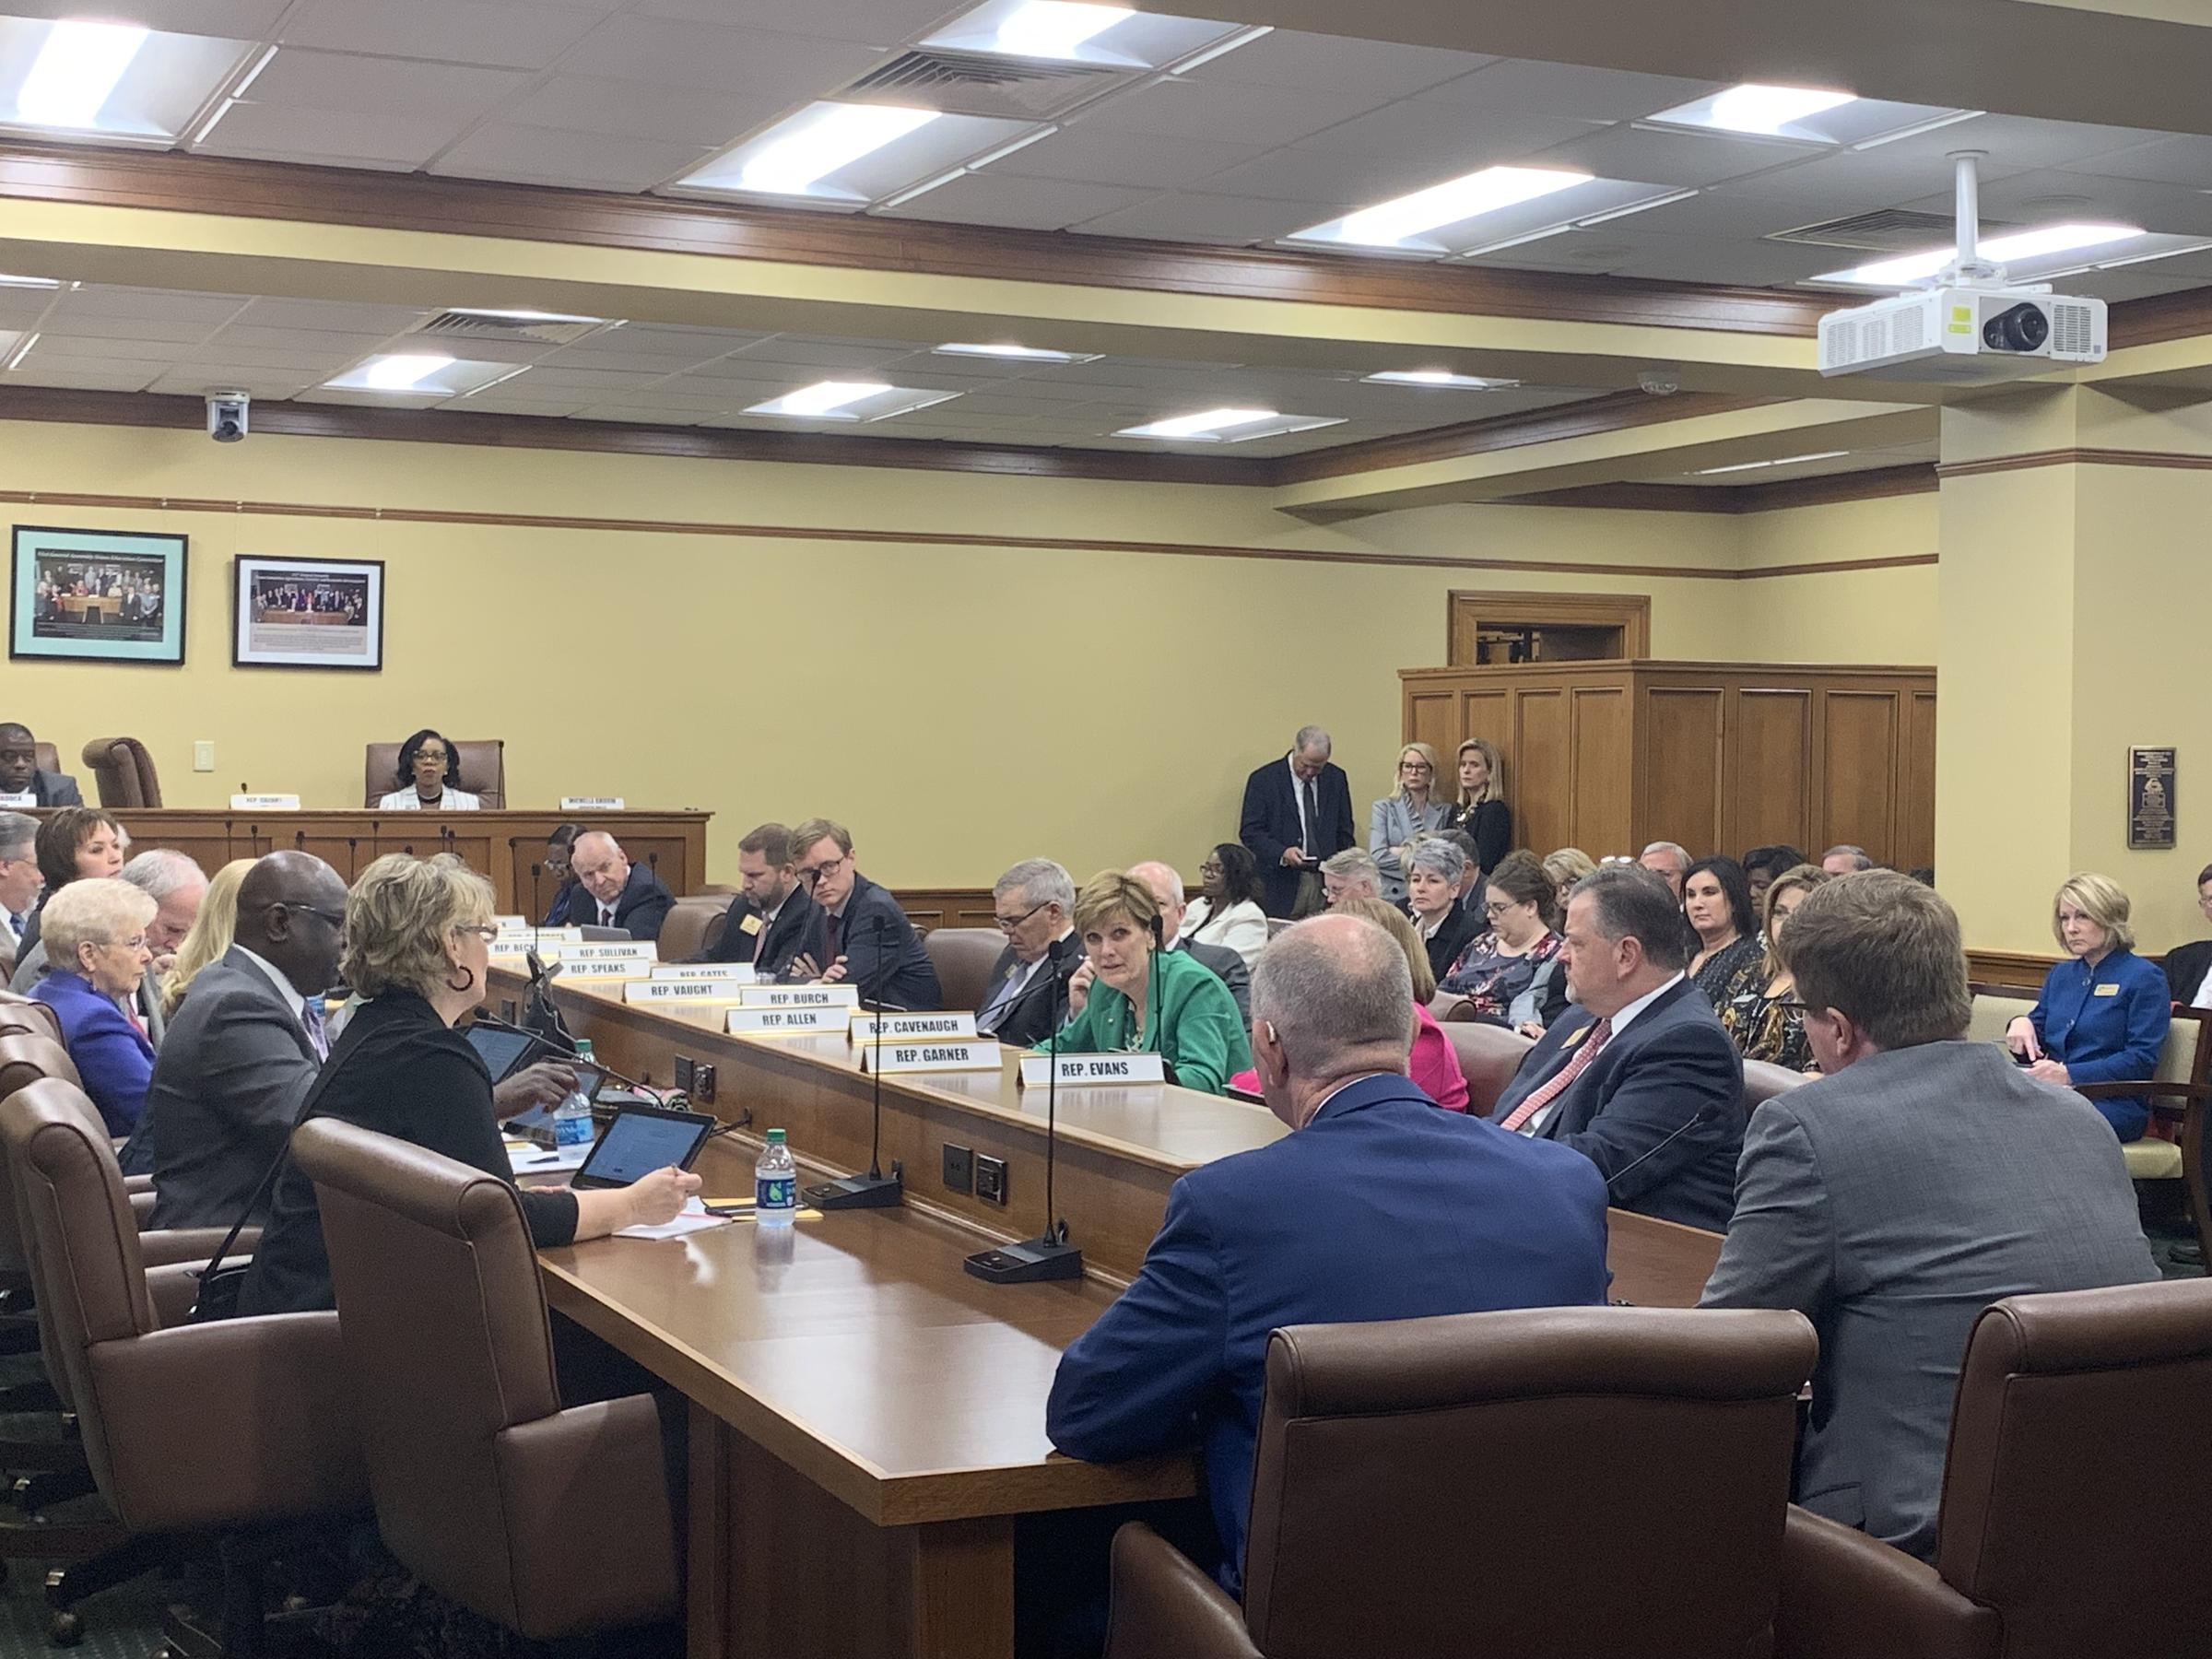 Bill To Raise Arkansas Teacher Salaries Pes Committee Despite Funding Questions